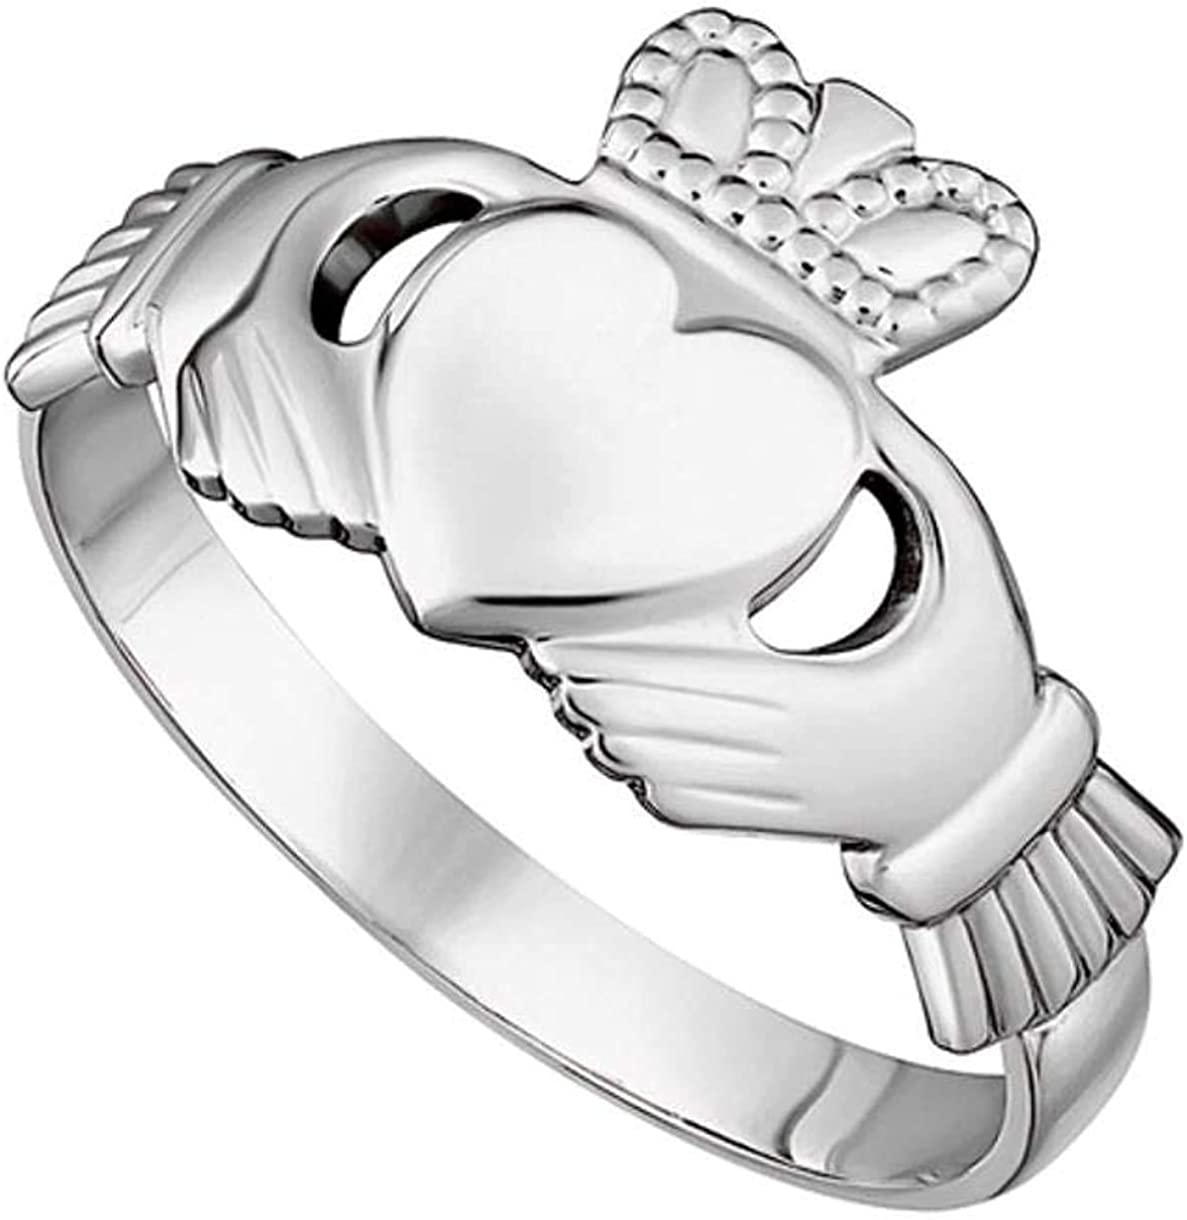 Womens Claddagh Ring Made in Ireland Classic Sterling Silver Traditional Claddagh Design Fine Details Made in Co. Dublin by Maker-Partner Solvar